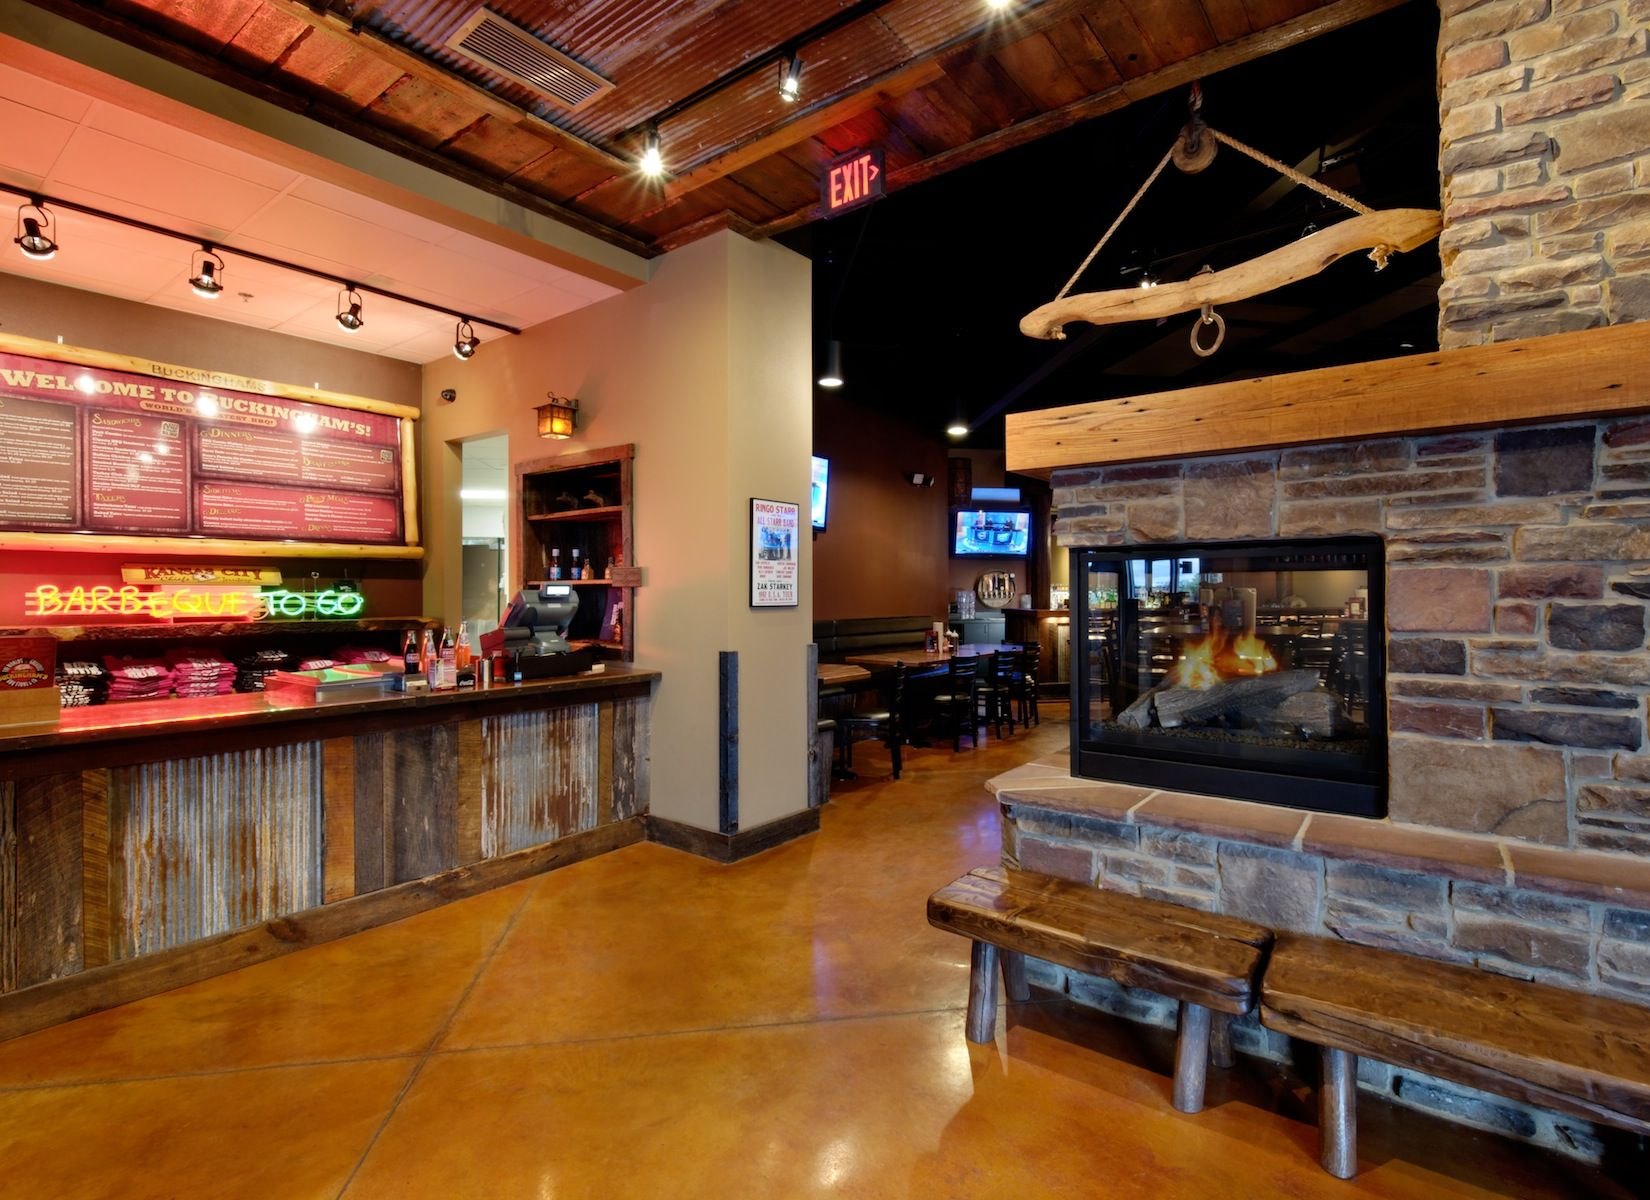 Bbq Restaurant Interior Design Google Search